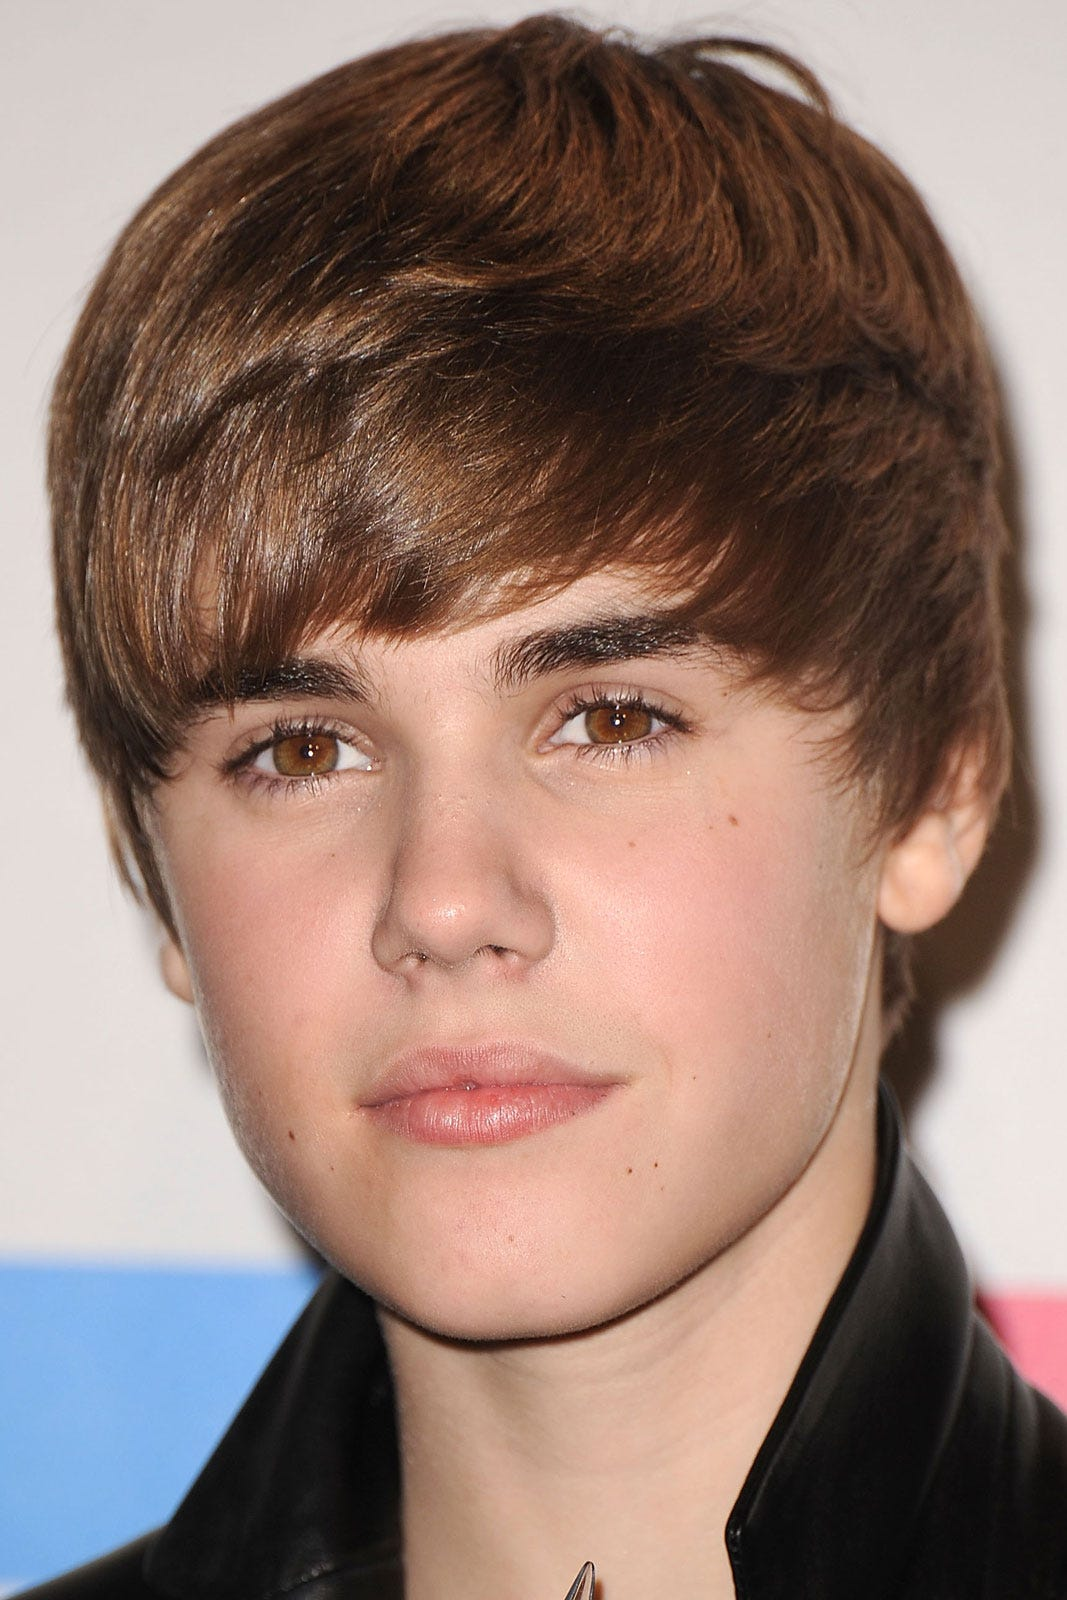 Justin Bieber S Hair Has Changed So Much Over The Years